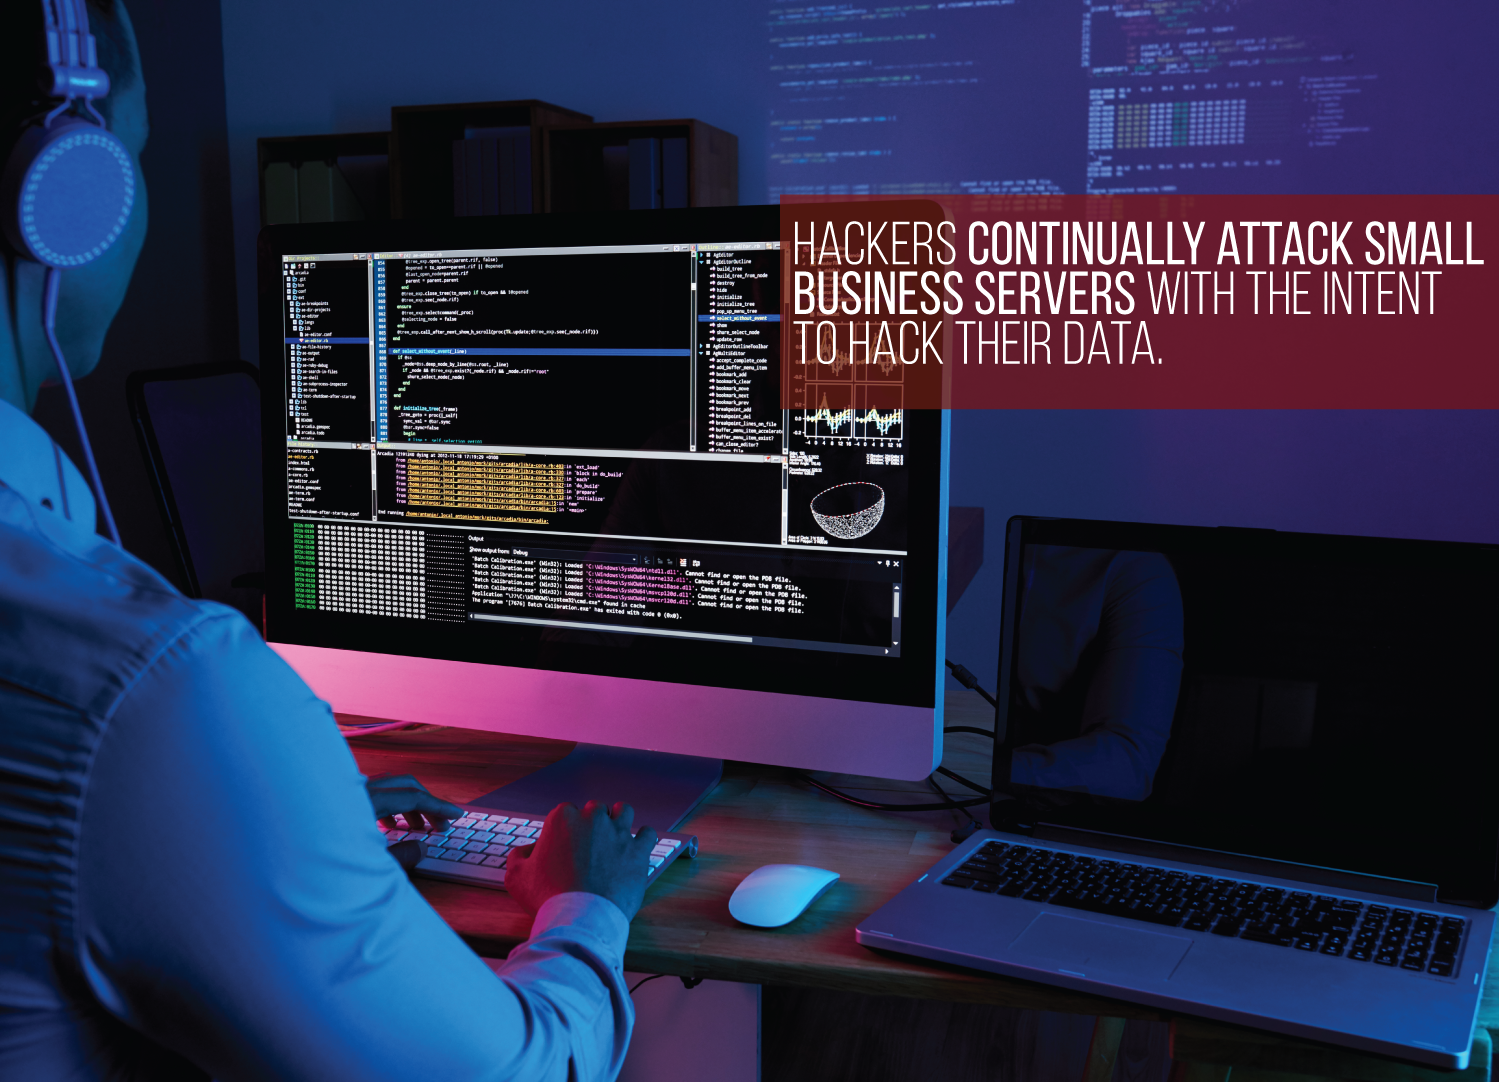 hackers attack small businesses with malware and ransomware